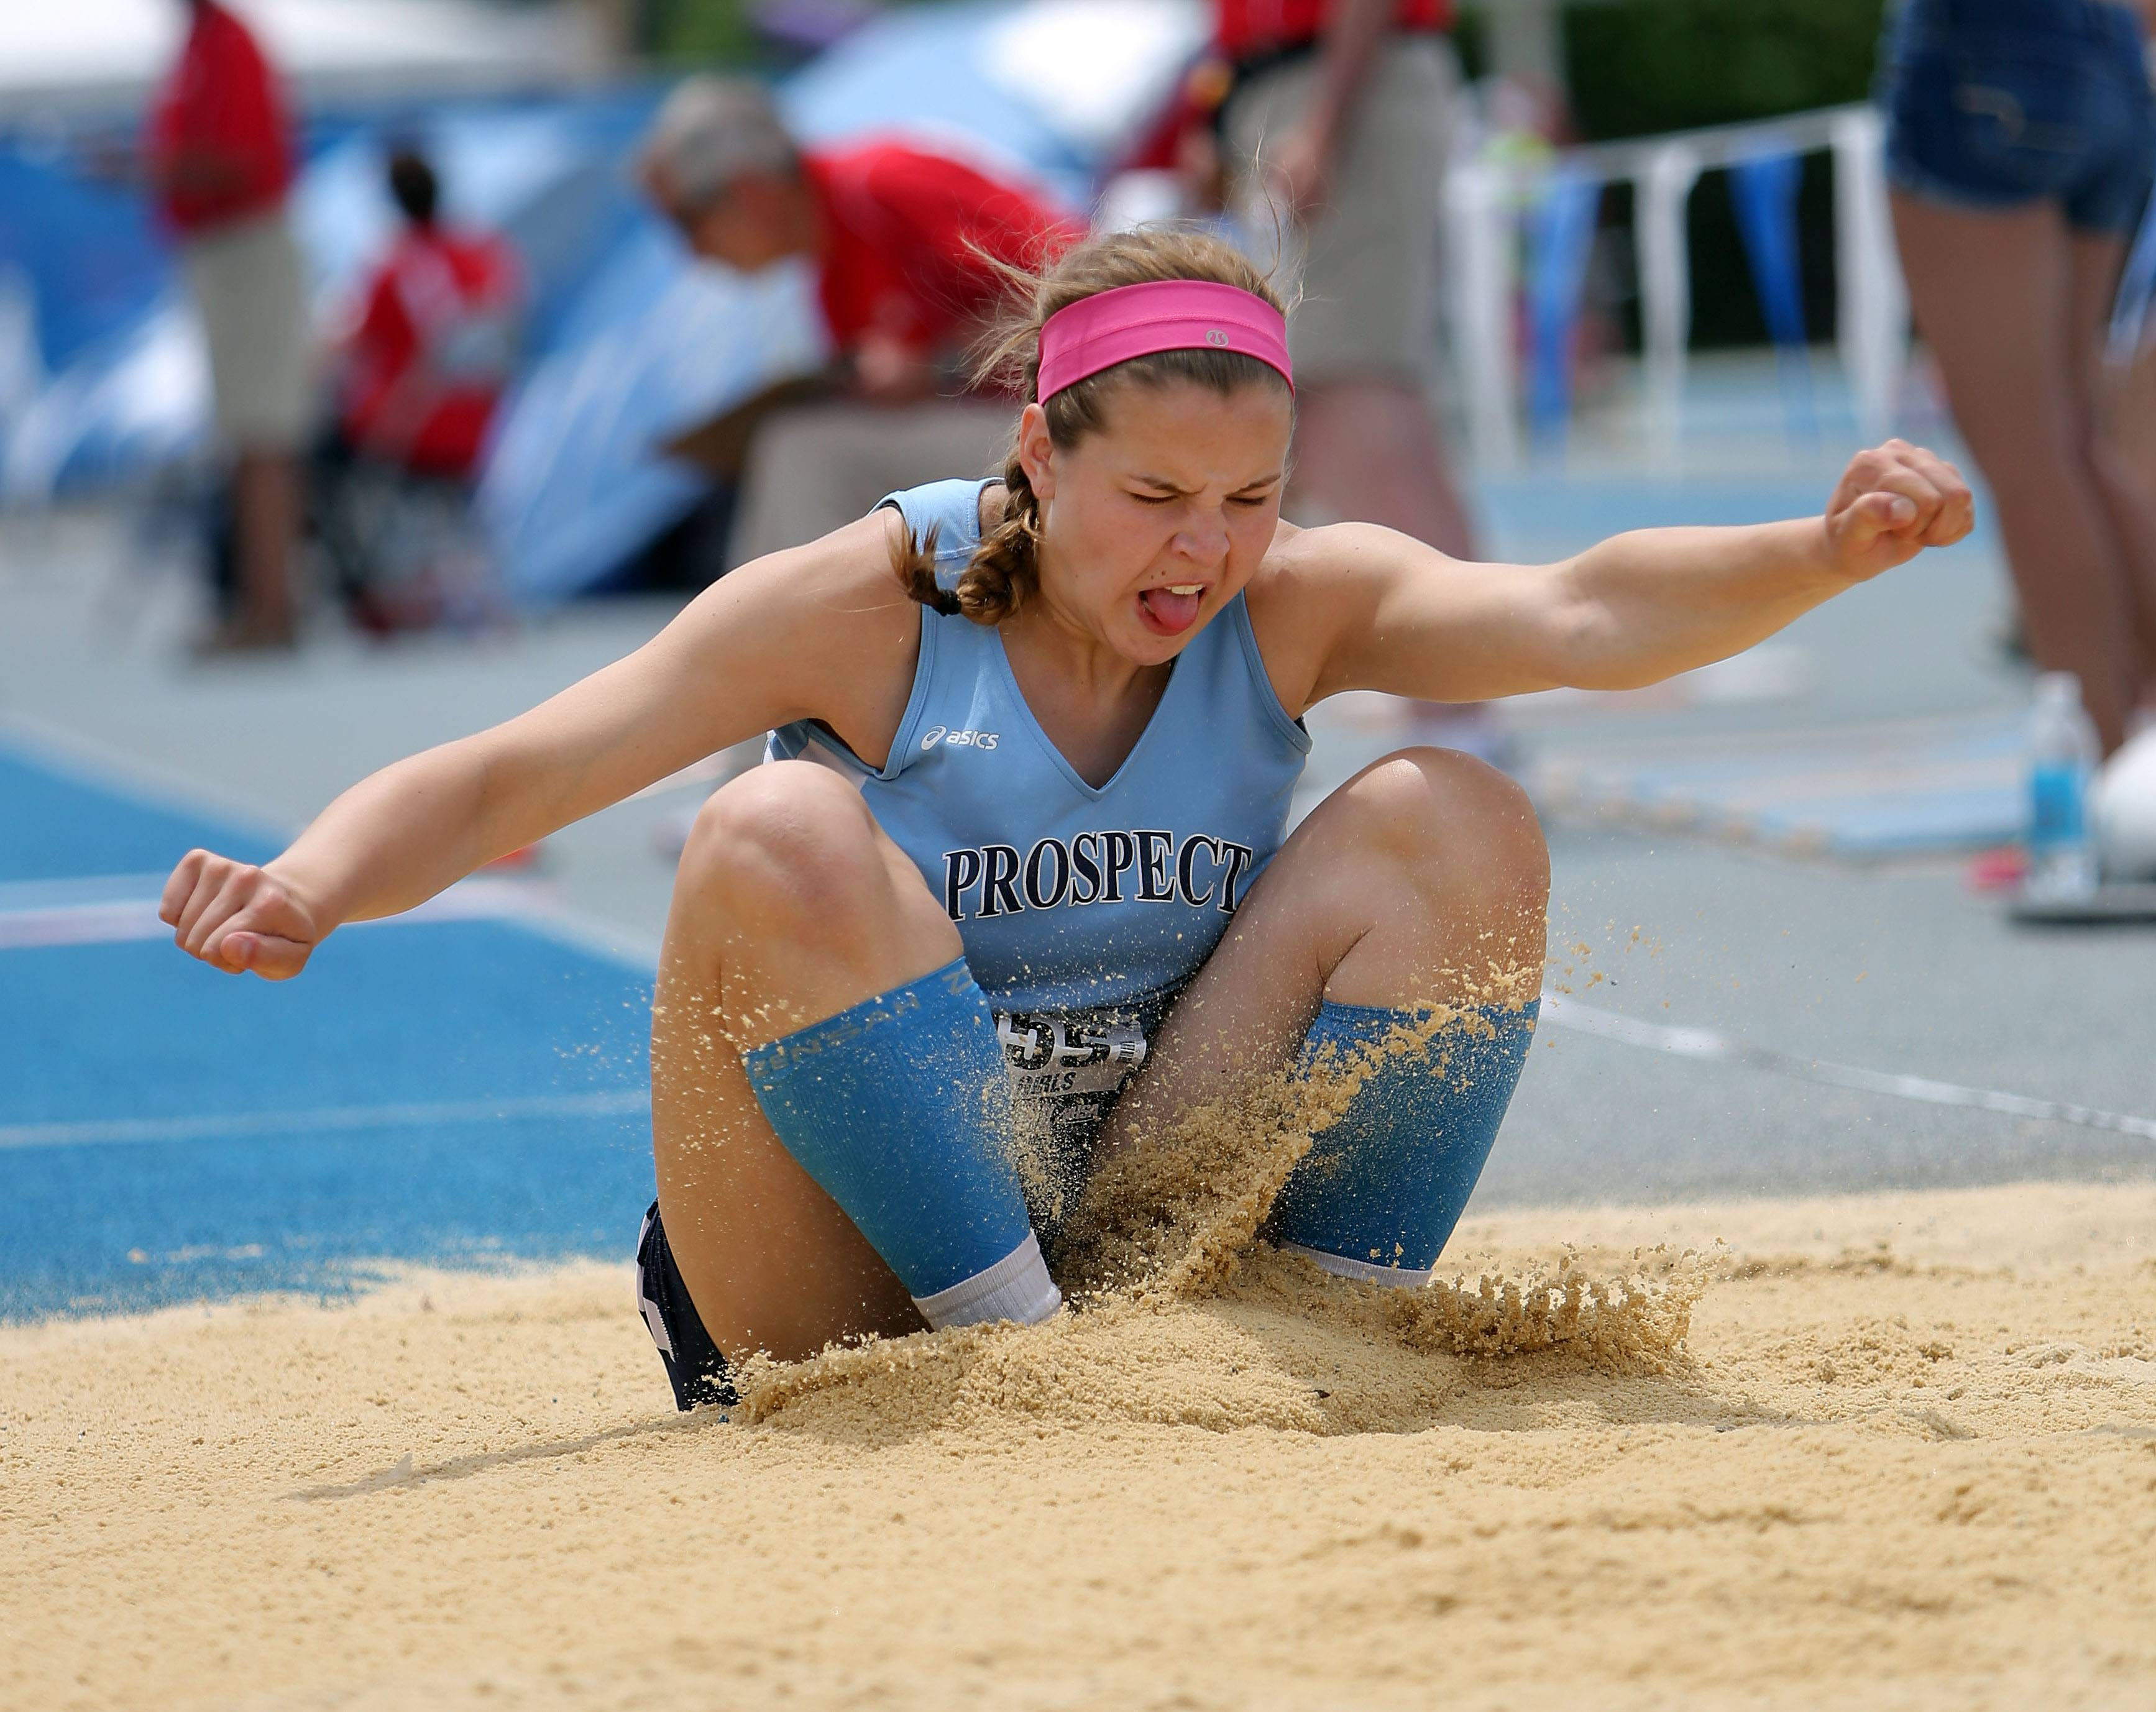 Prospect's Catherine Sherwood competes in the class 3A triple jump during the girls track and field state finals at Eastern Illinois University in Charleston Saturday.